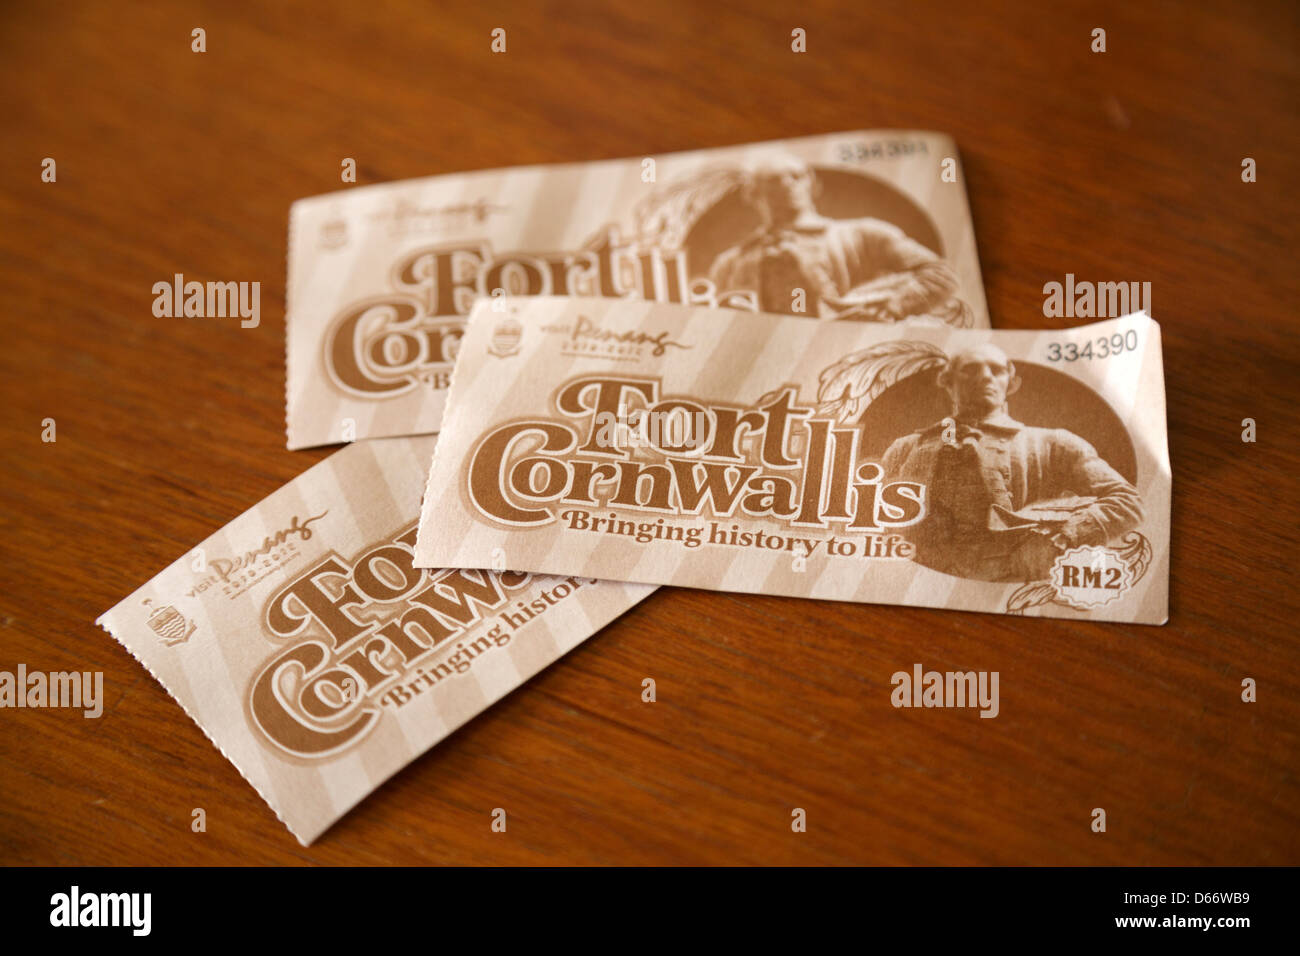 Ticket stub for entry to Fort Cornwallis, George Town, Penang, Malaysia - Stock Image